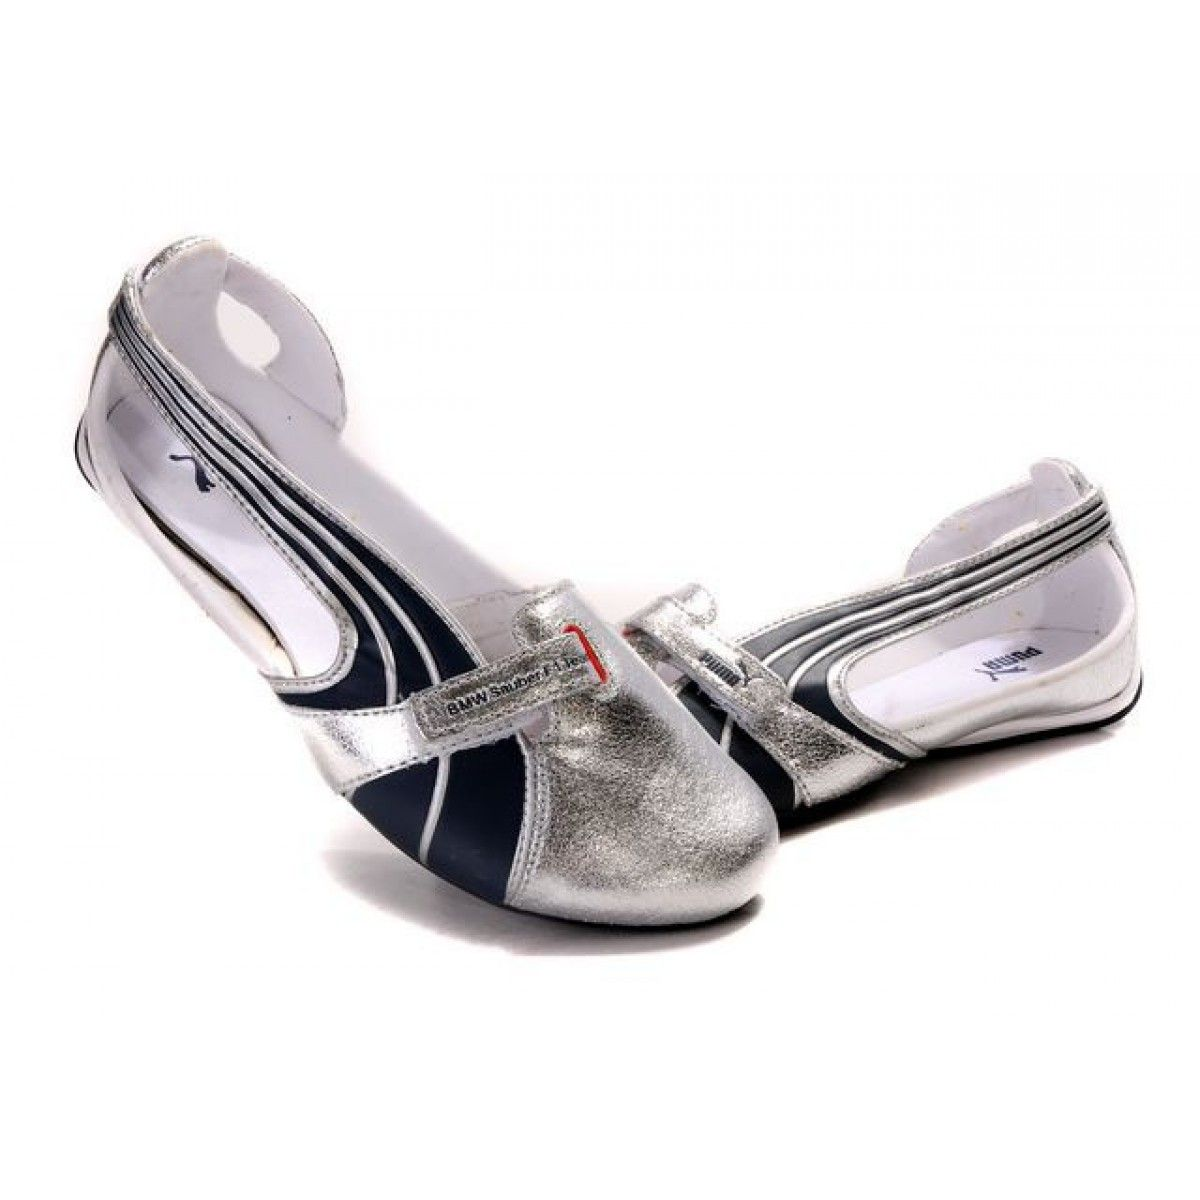 Ballet Flats On Sale | Puma Espera II Ballerina Flats Womens Sandals ...